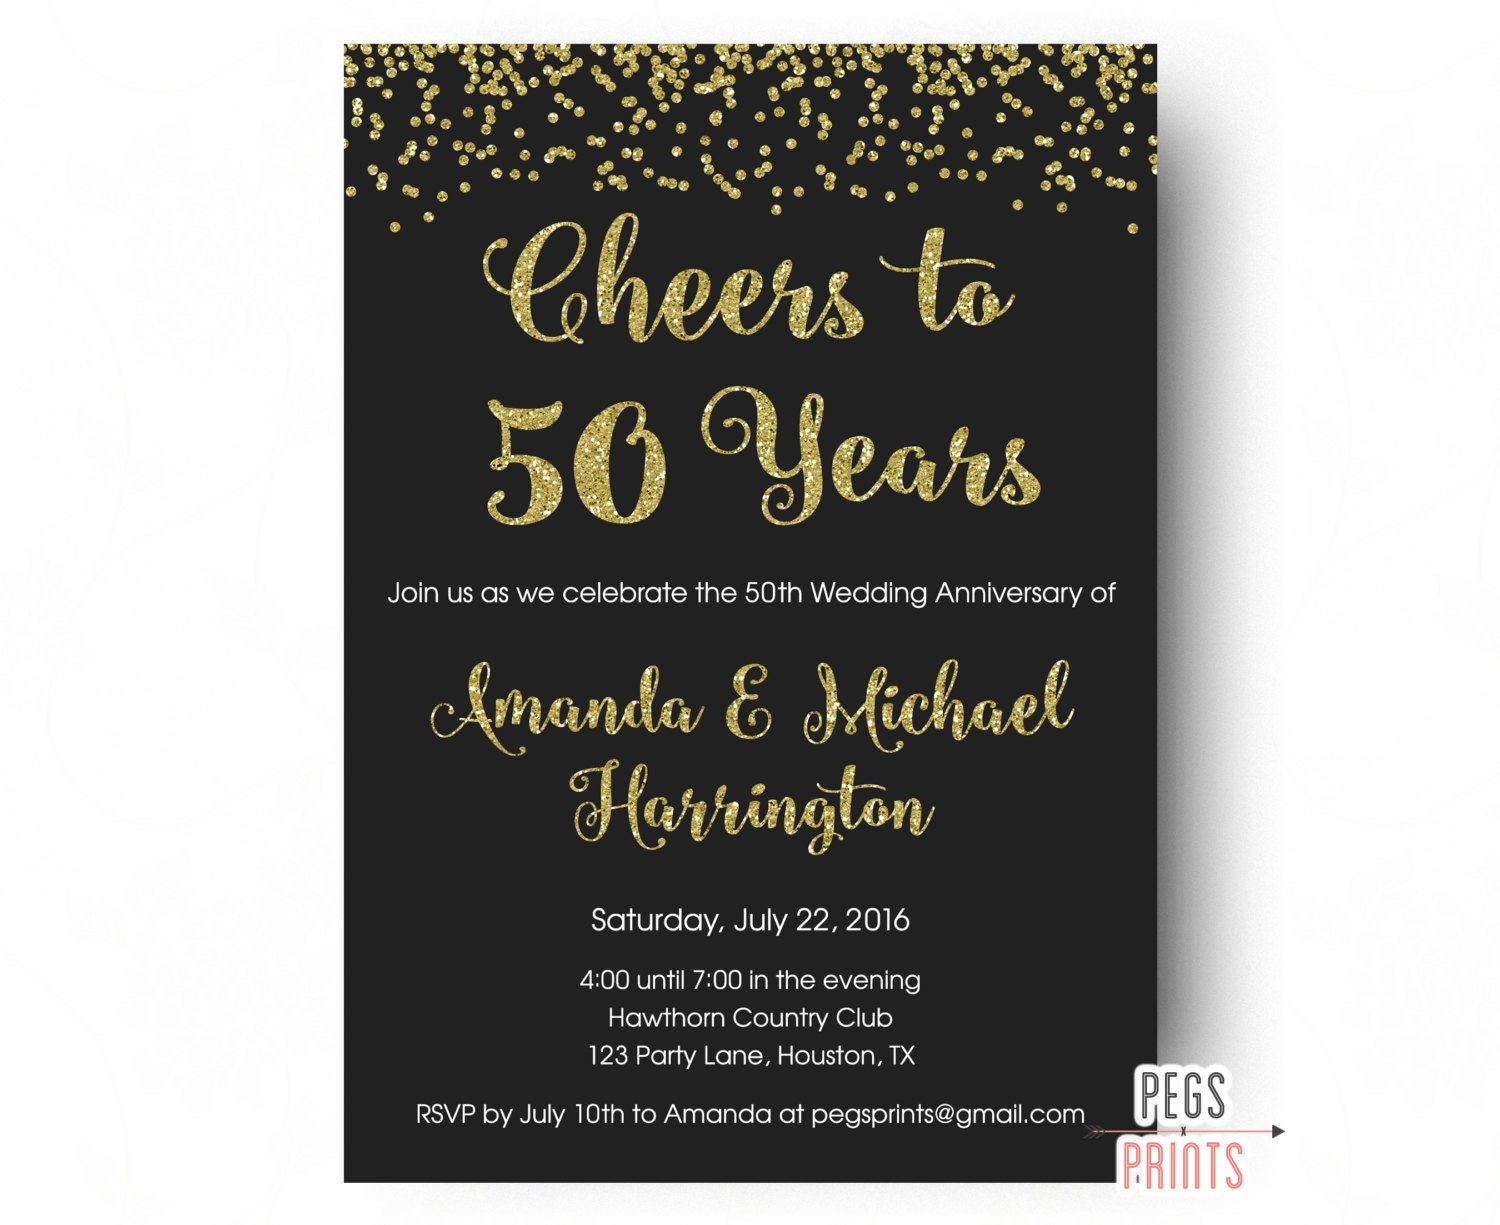 50th wedding anniversary invitation - Acur.lunamedia.co